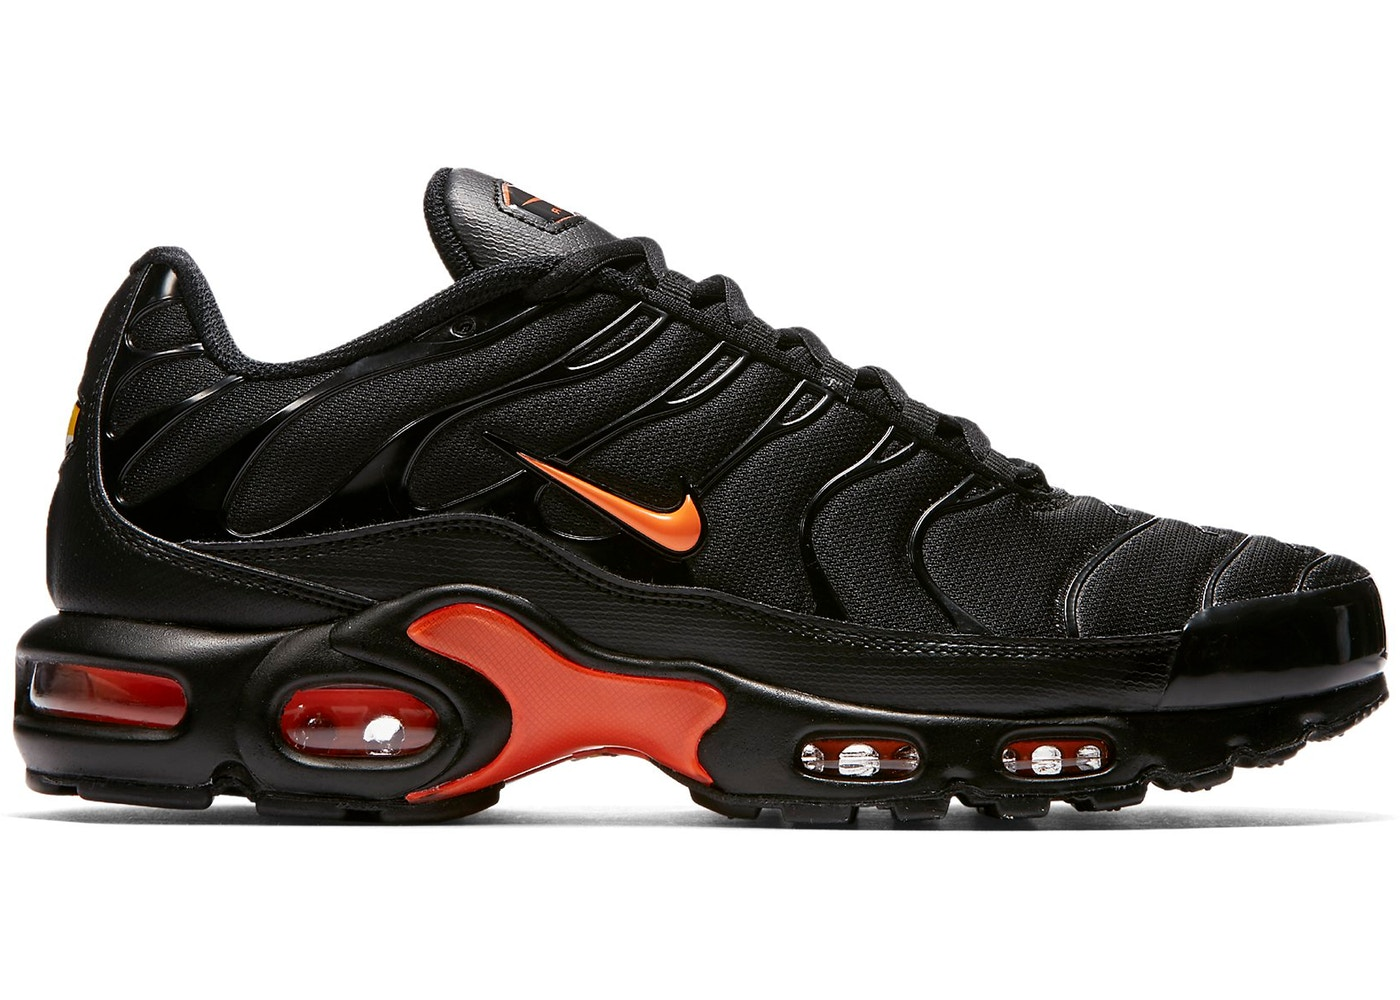 timeless design 9742e f4edb Air Max Plus Black Orange - AO9564-001